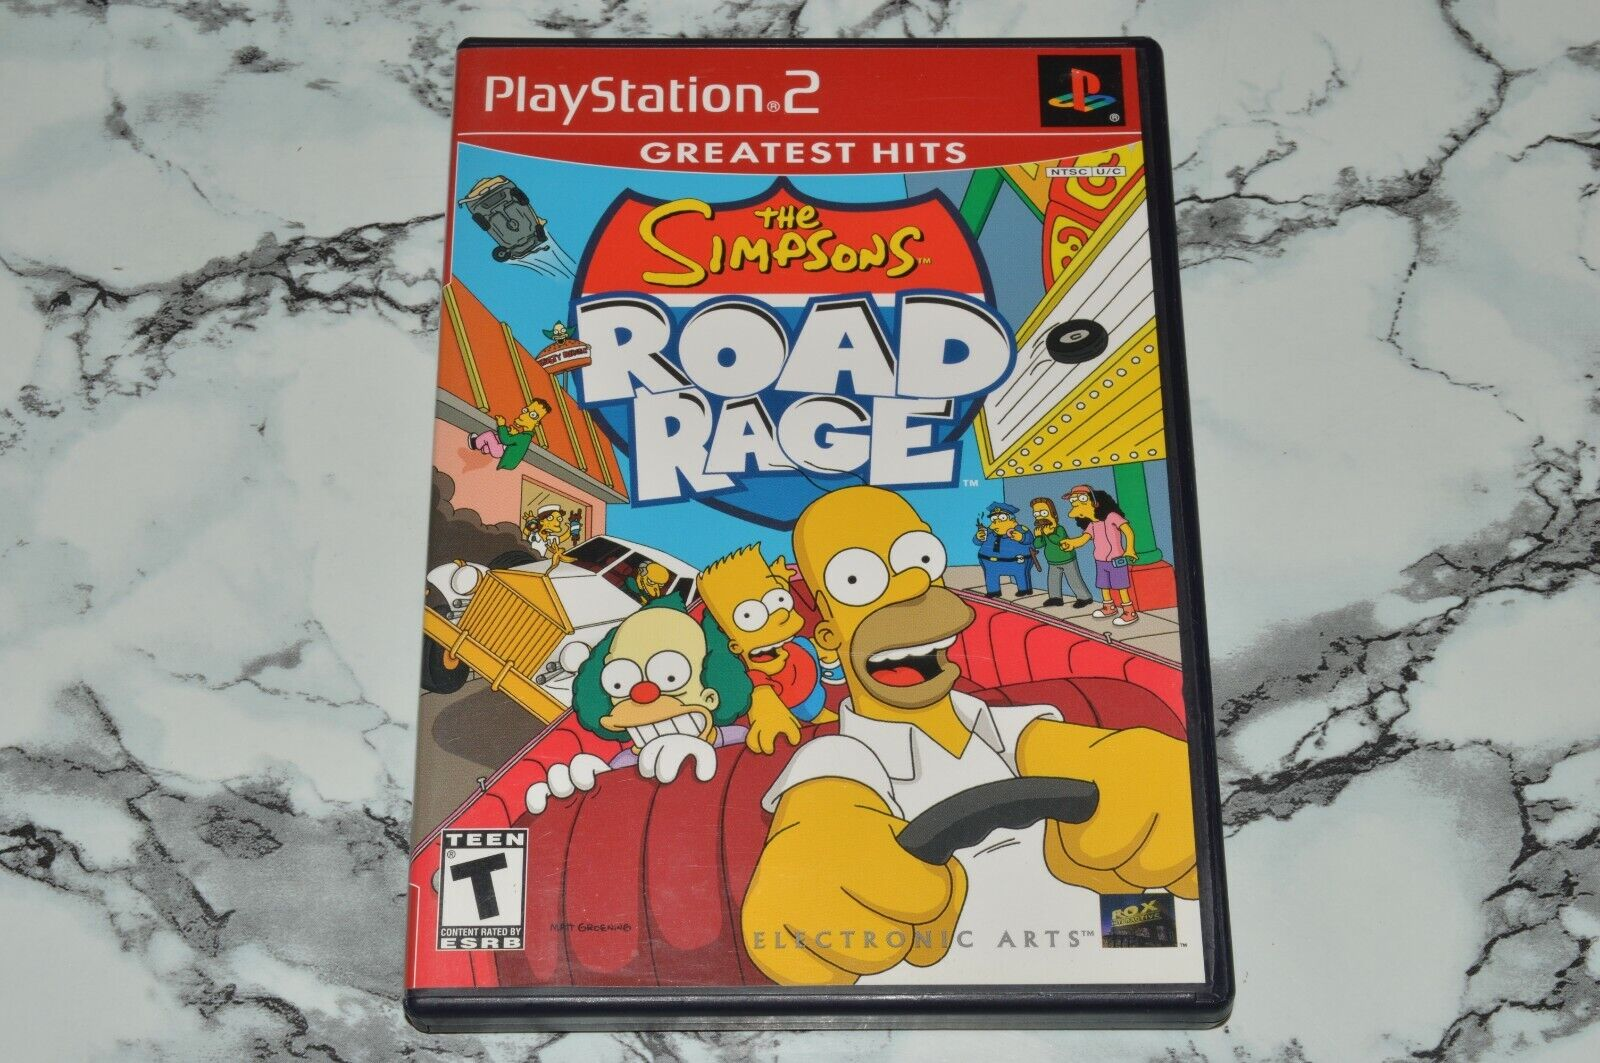 The Simpsons - Road Rage - Greatest Hits Sony PlayStation 2 Complete W/ Manual - $11.18